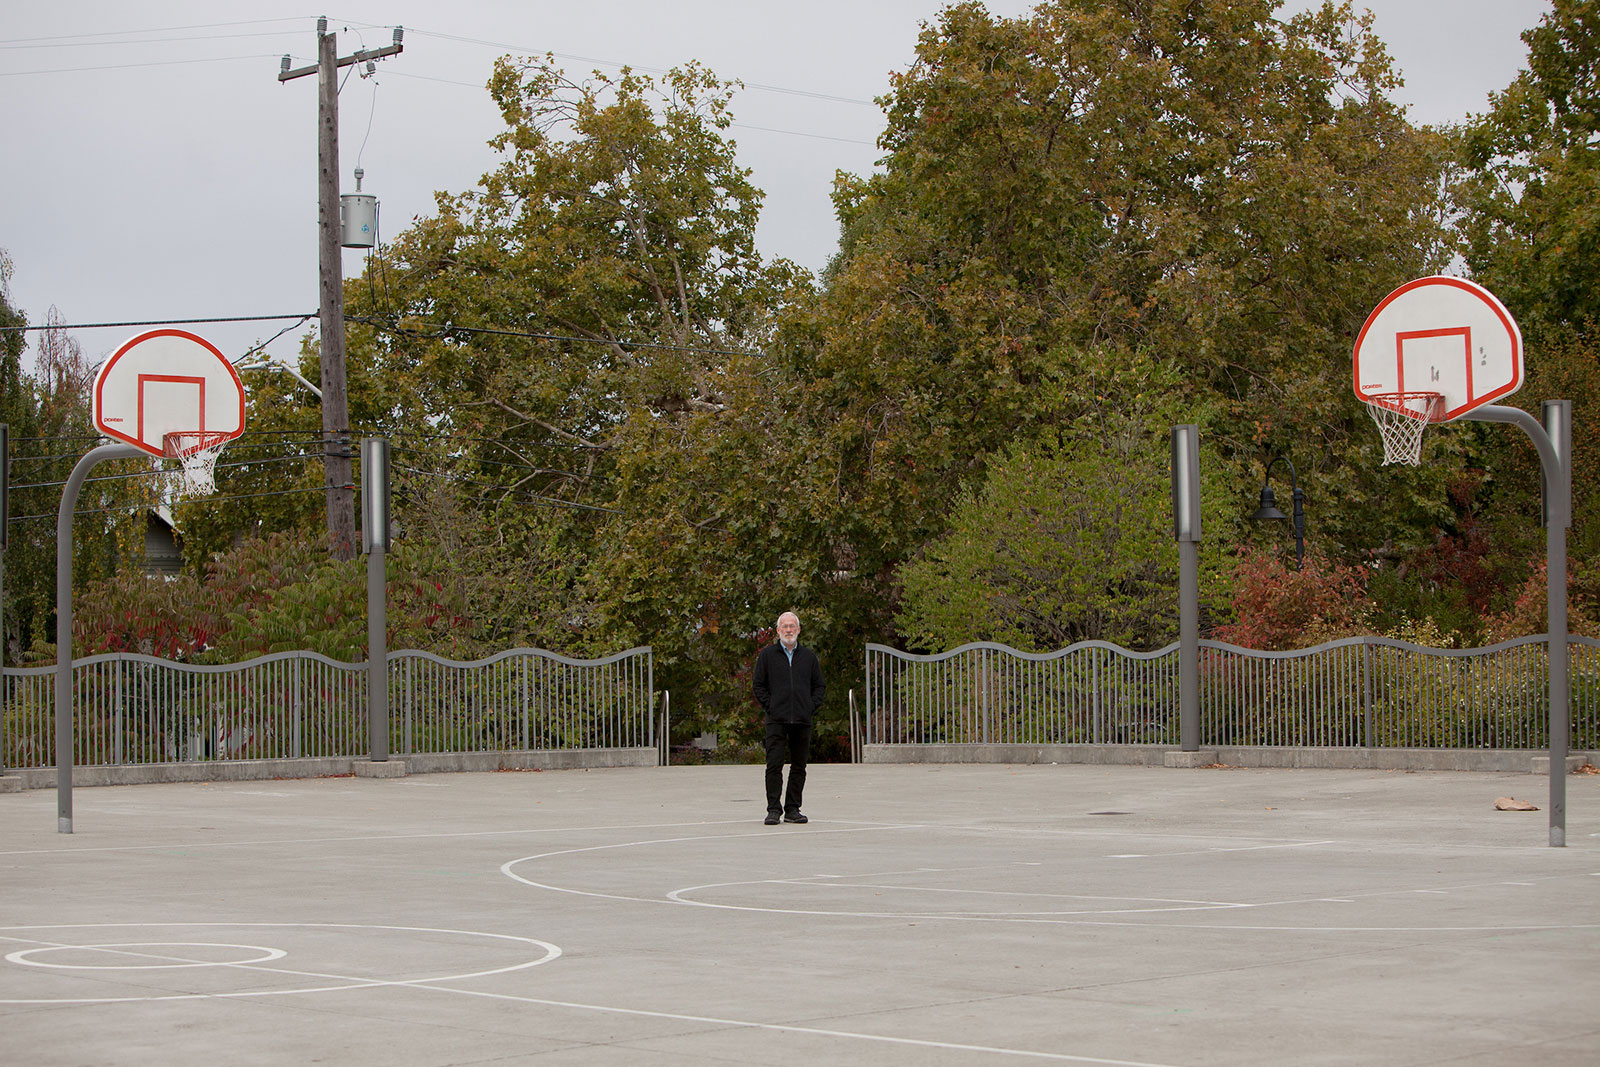 Leo Muller, executive director of CHOICES Education Group, on a basketball court